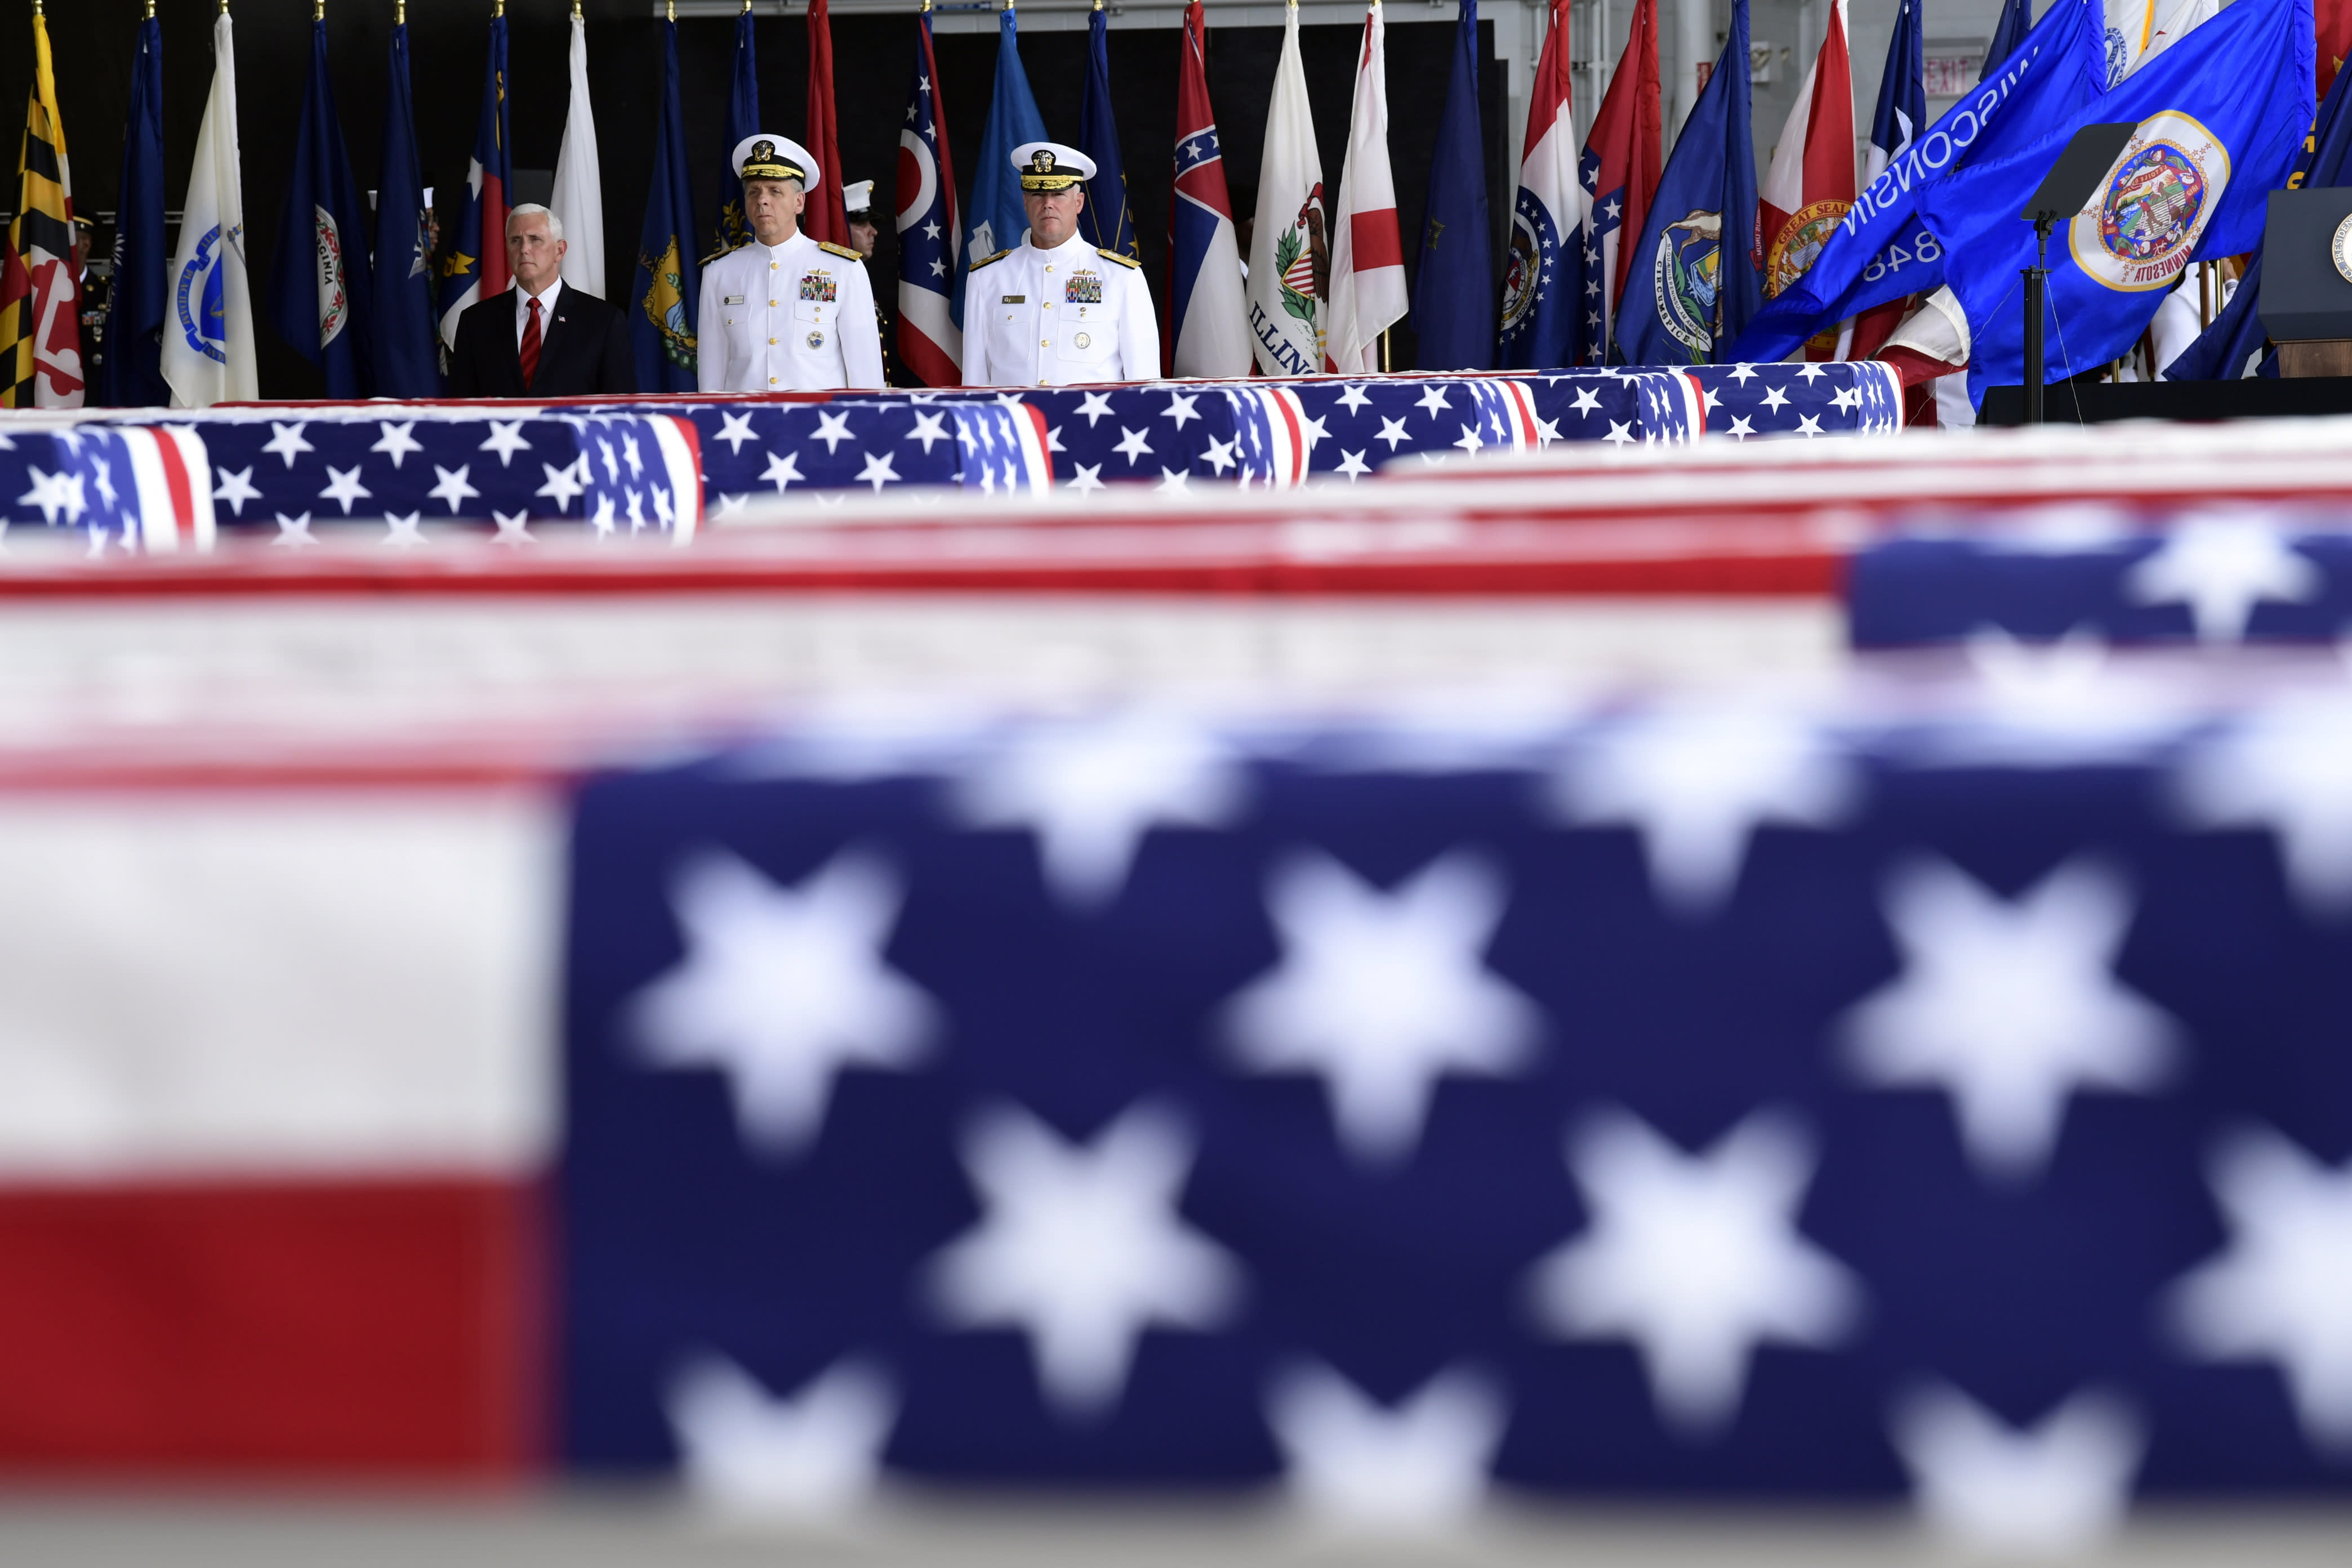 Remains of U.S. soldiers from the Korean War are repatriated